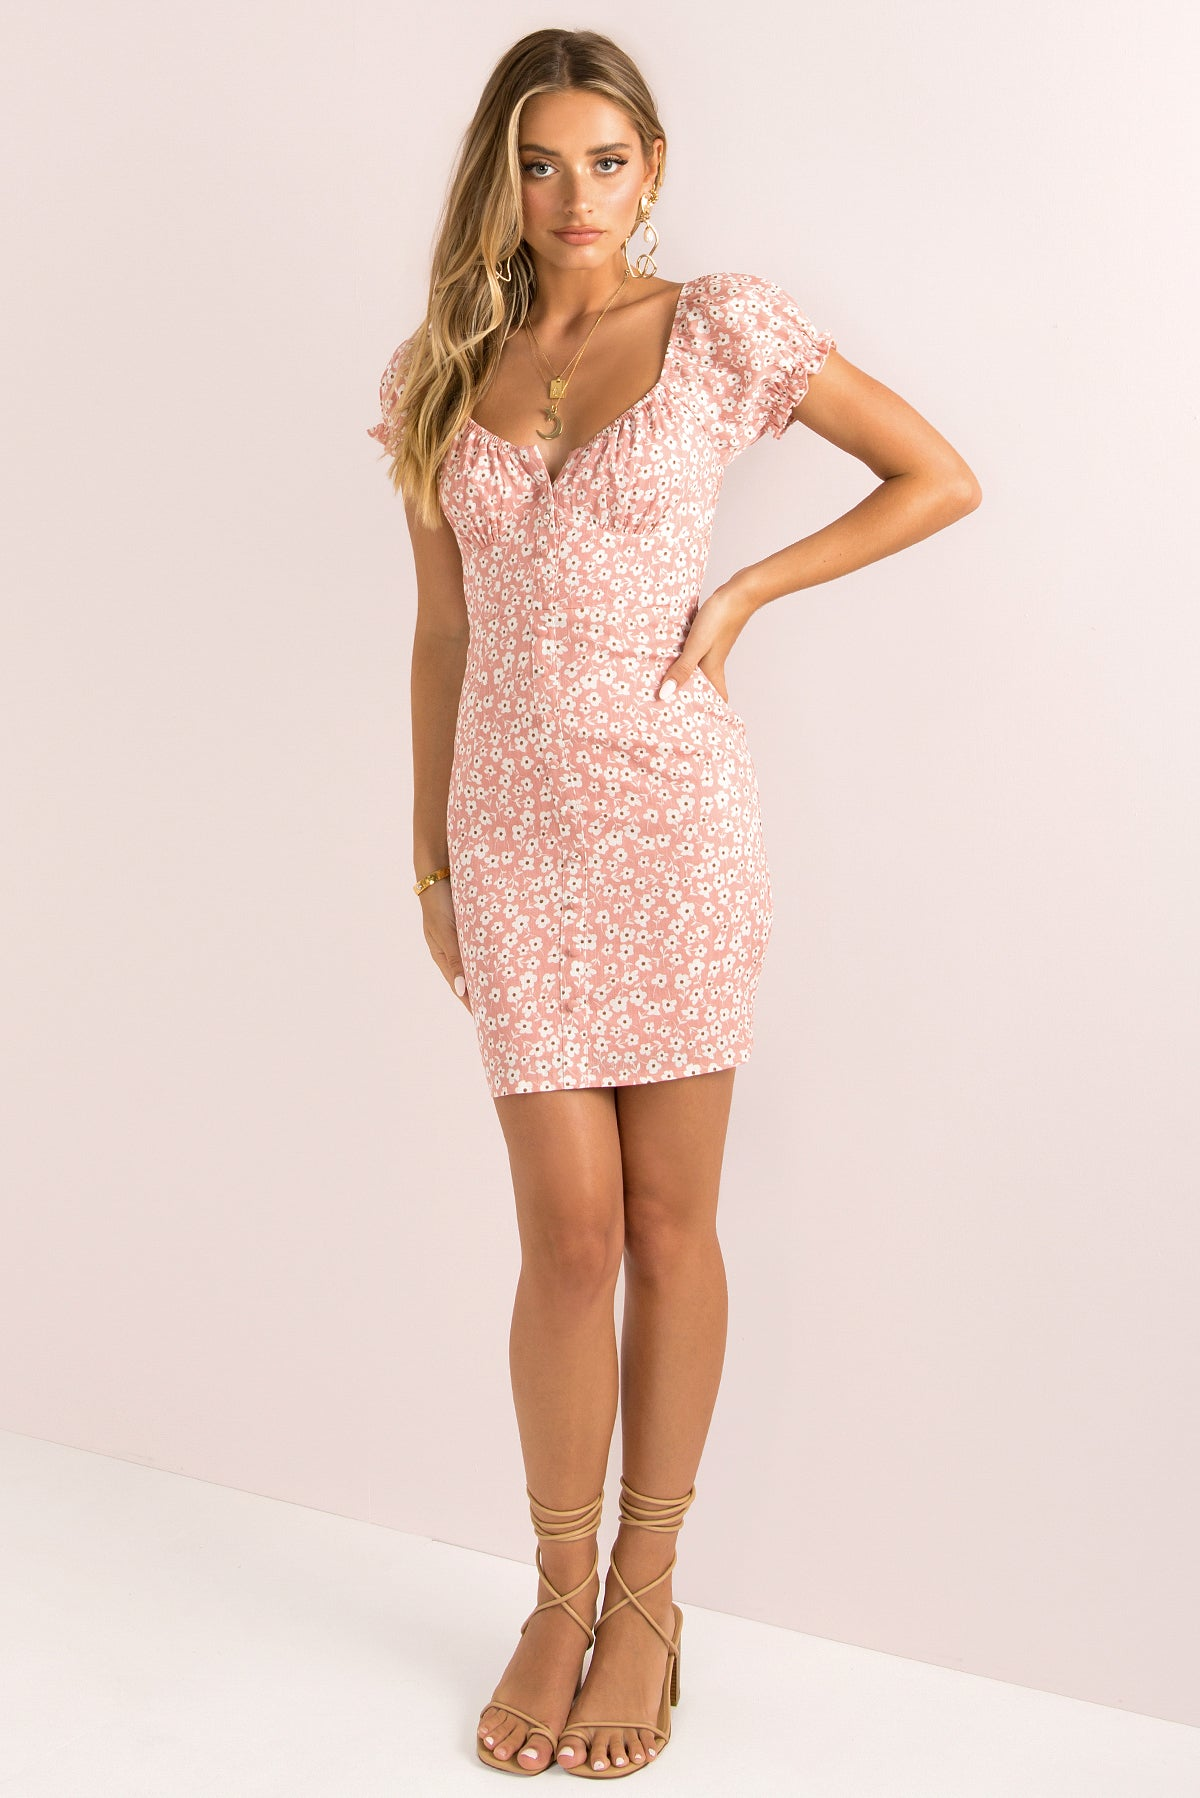 Devon Dress / Blush